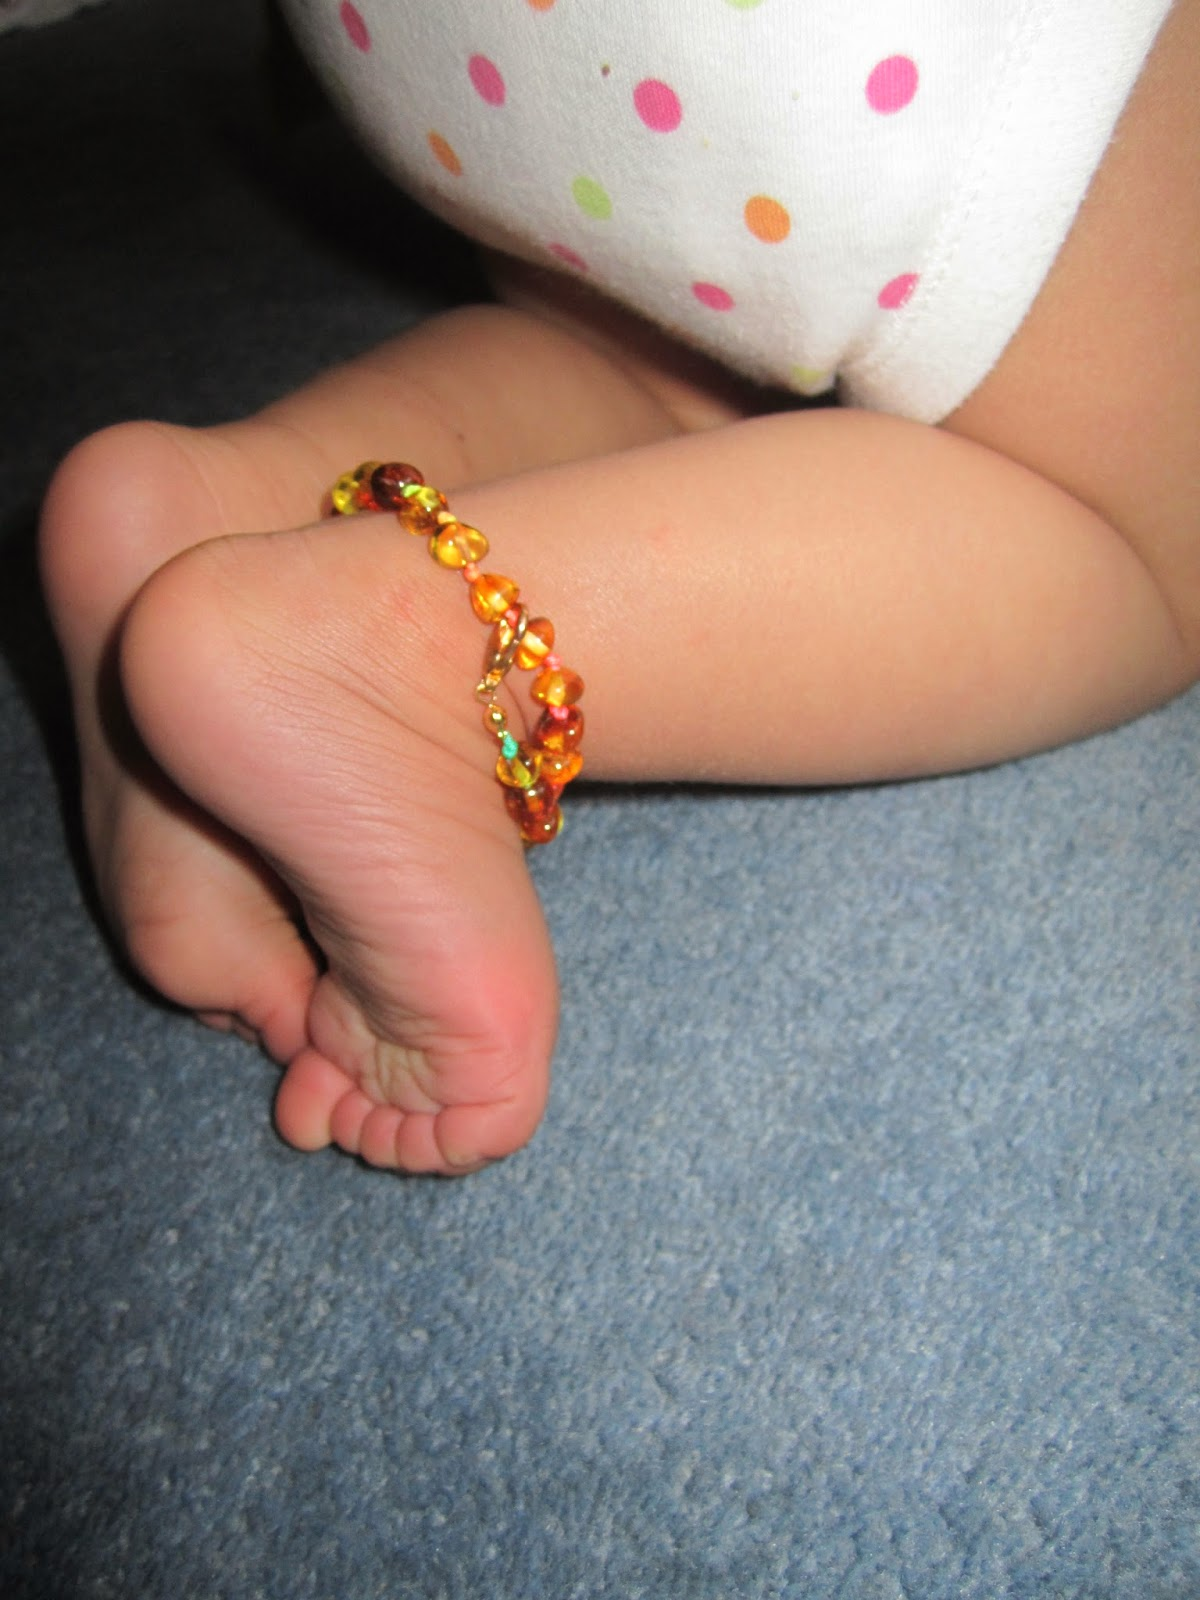 Baby wearing amber anklet